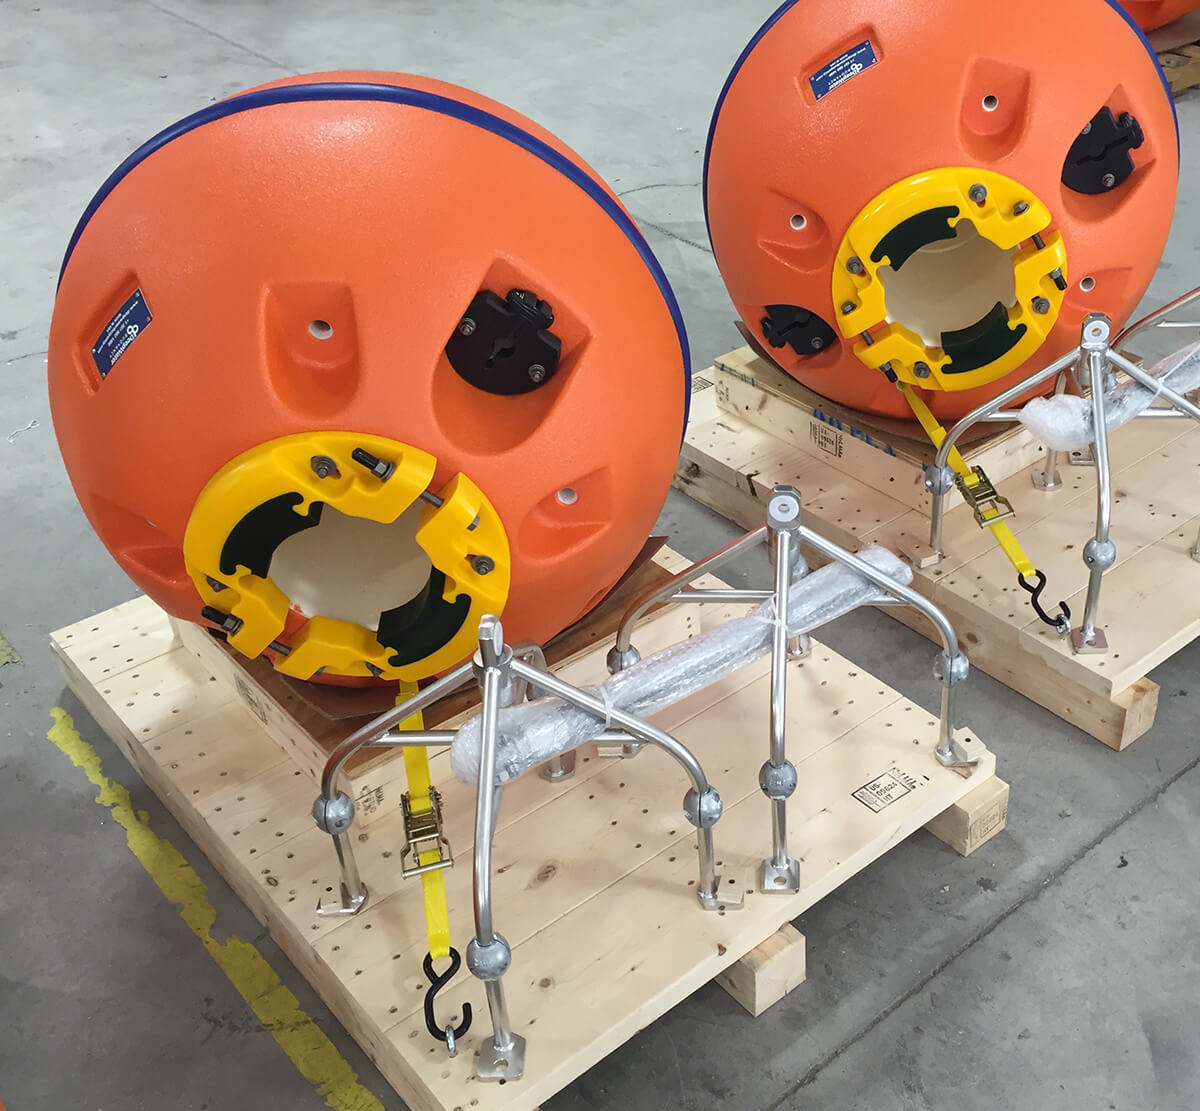 Spherical ADCP Buoys for Nortek Group Instruments on Skid